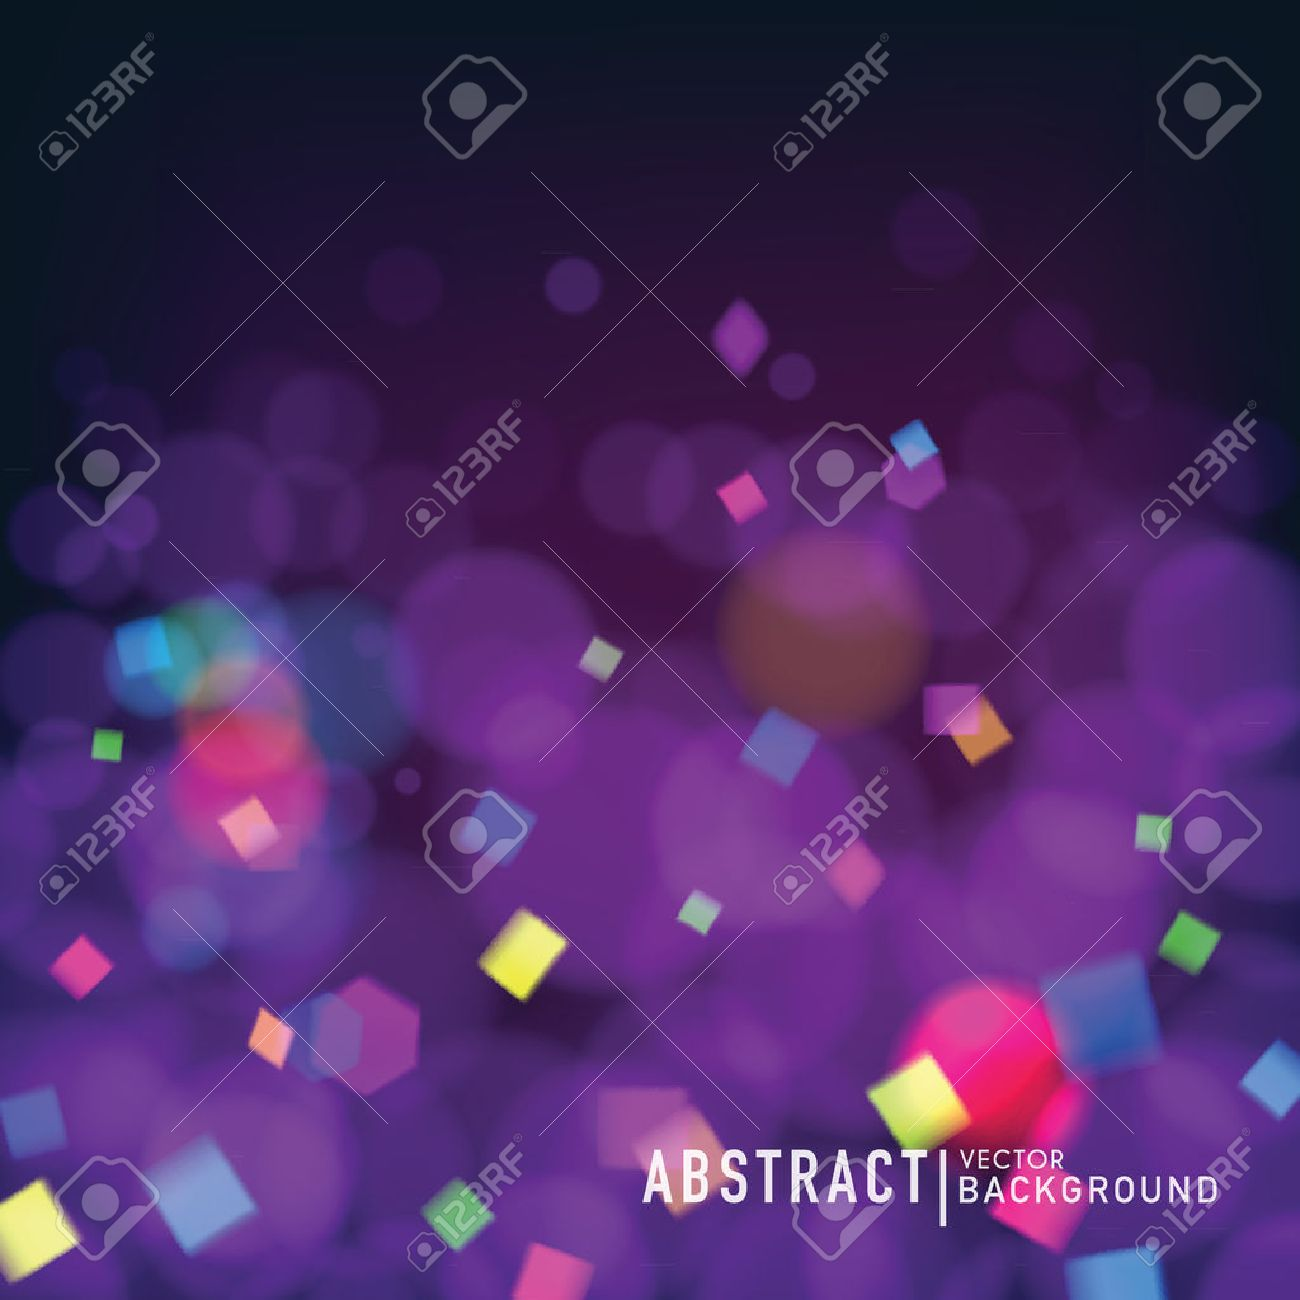 Abstract blurry background with bokeh effect and confetti. Wallpaper for celebrate or party invitation design